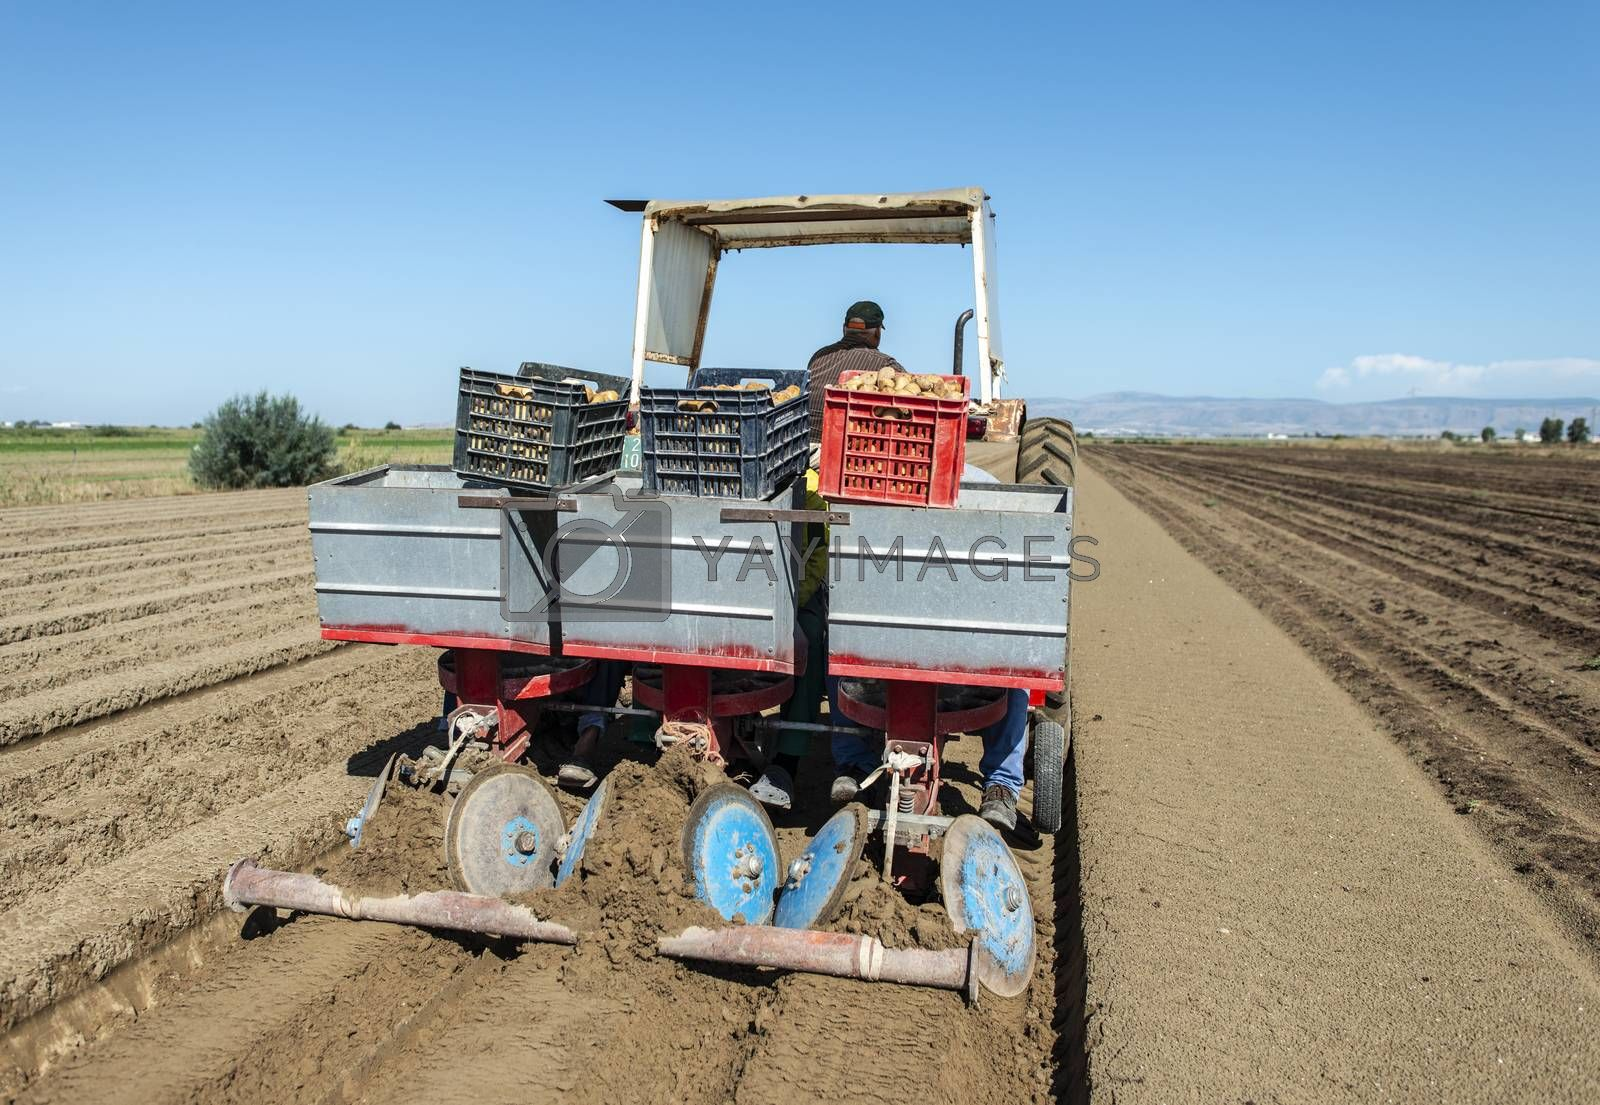 Tractor with crates planting potatoes. Automated agriculture concept for planting potatoes industrially.